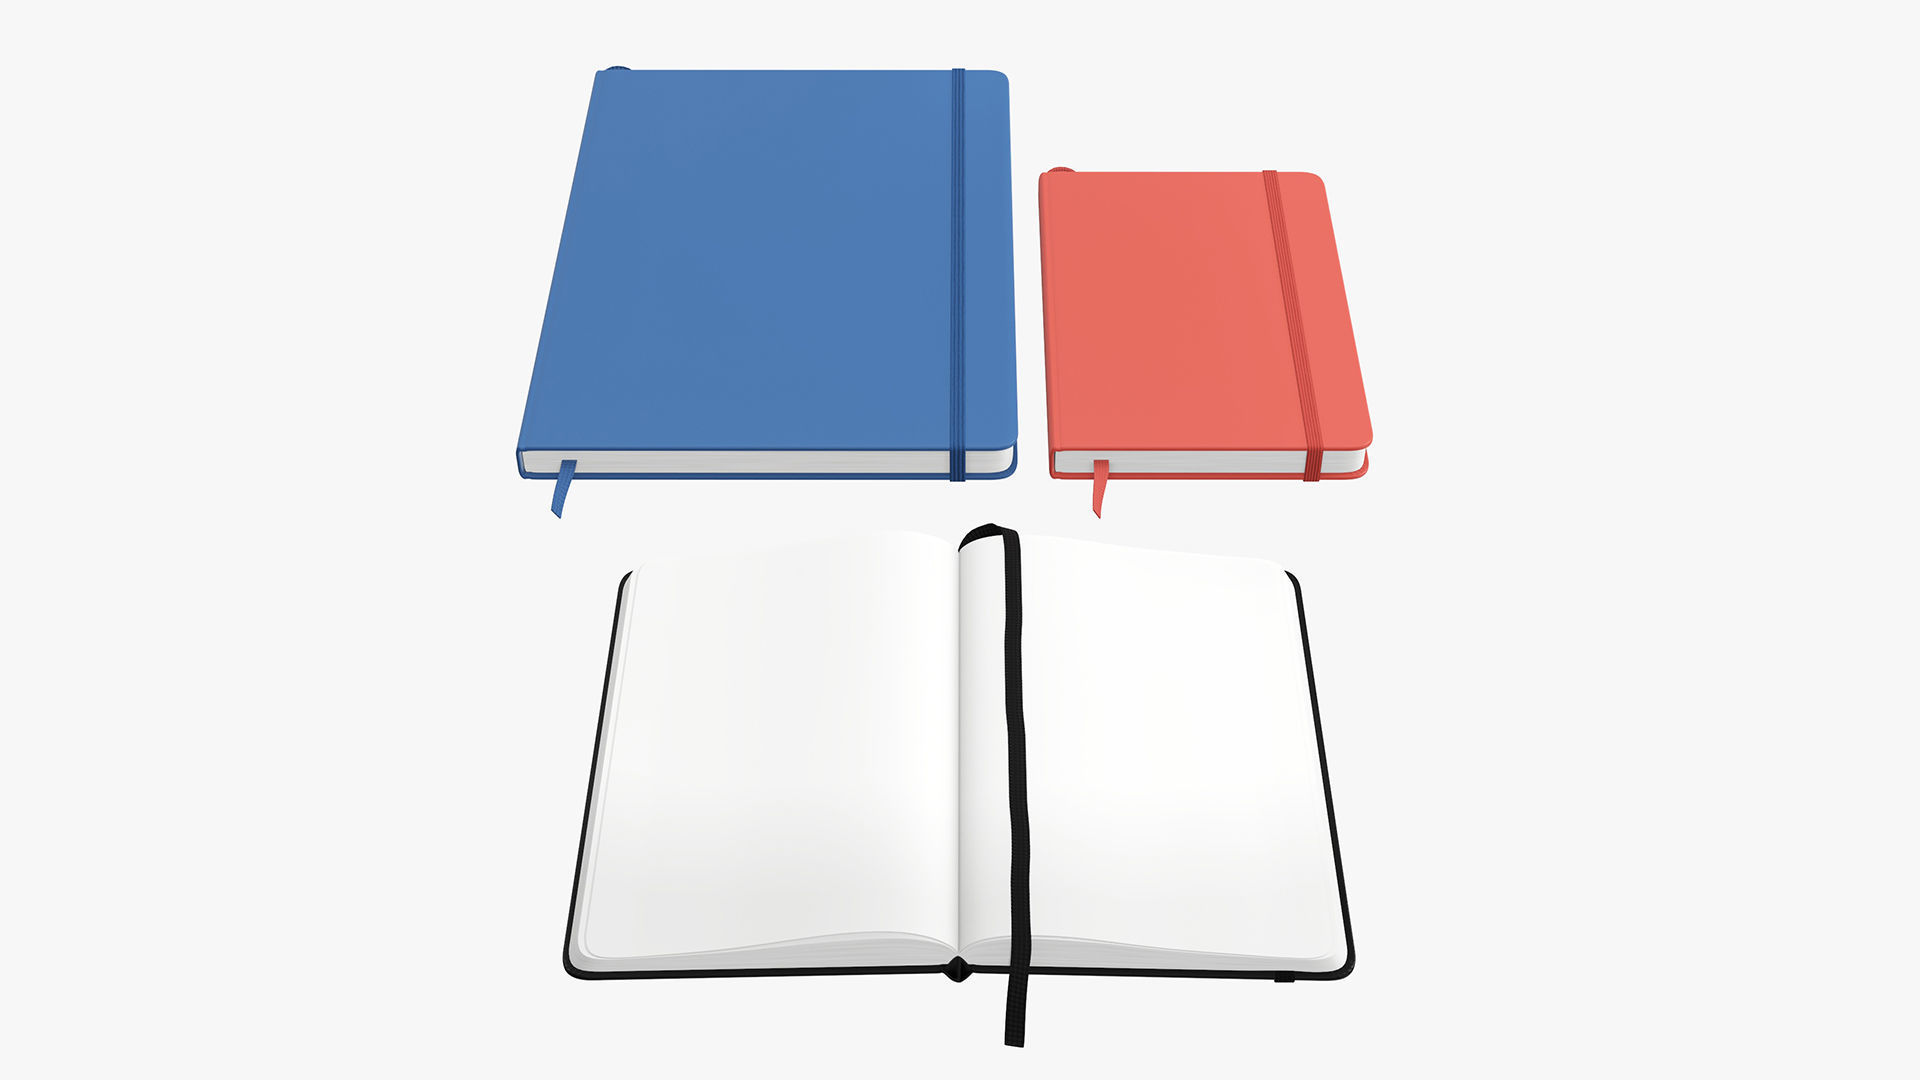 Notebooks hardcover with strap open close